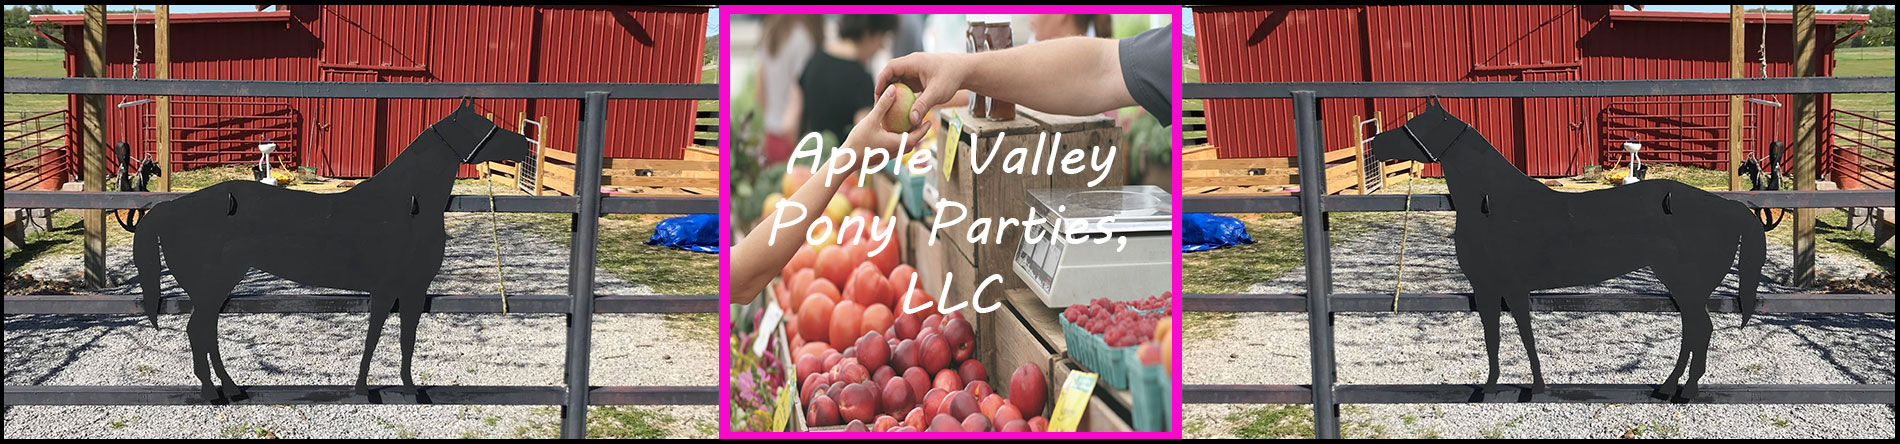 Apple Valley Pony Parties, LLC  is a Pony Party Service in Jonesborough, TN